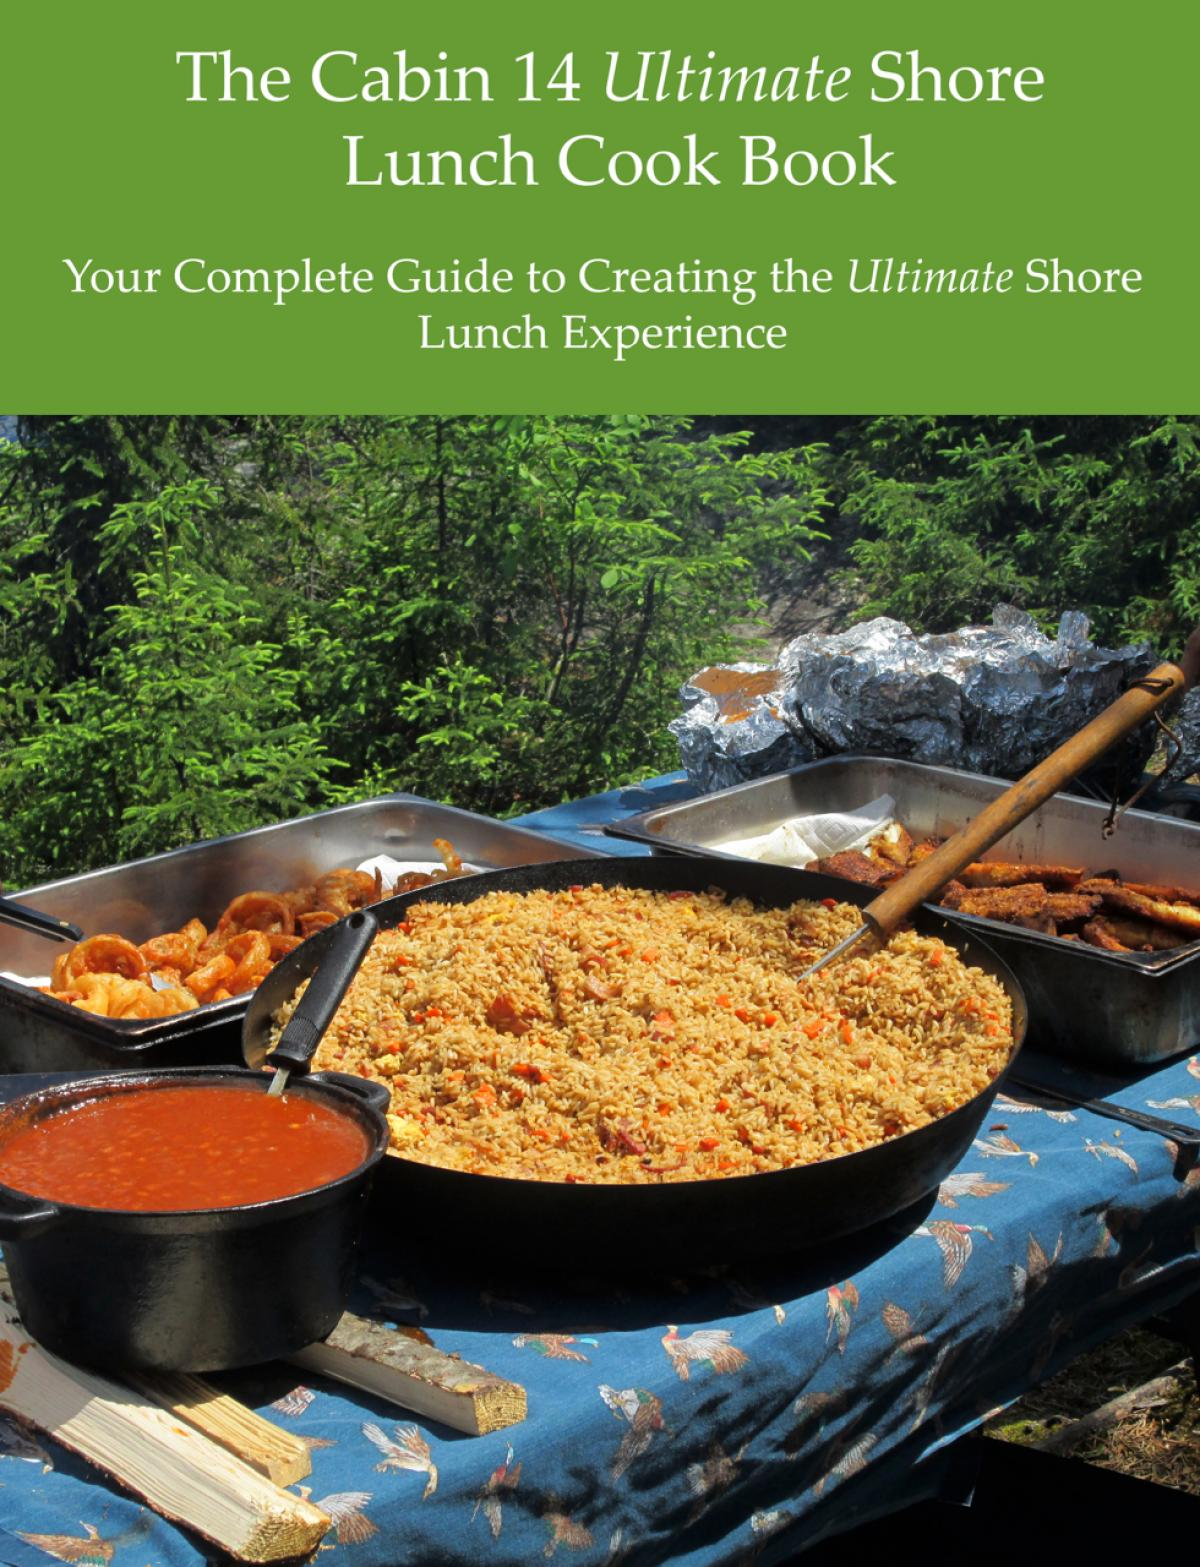 The Cabin 14 Ultimate Shore Lunch Cook Book Free Download